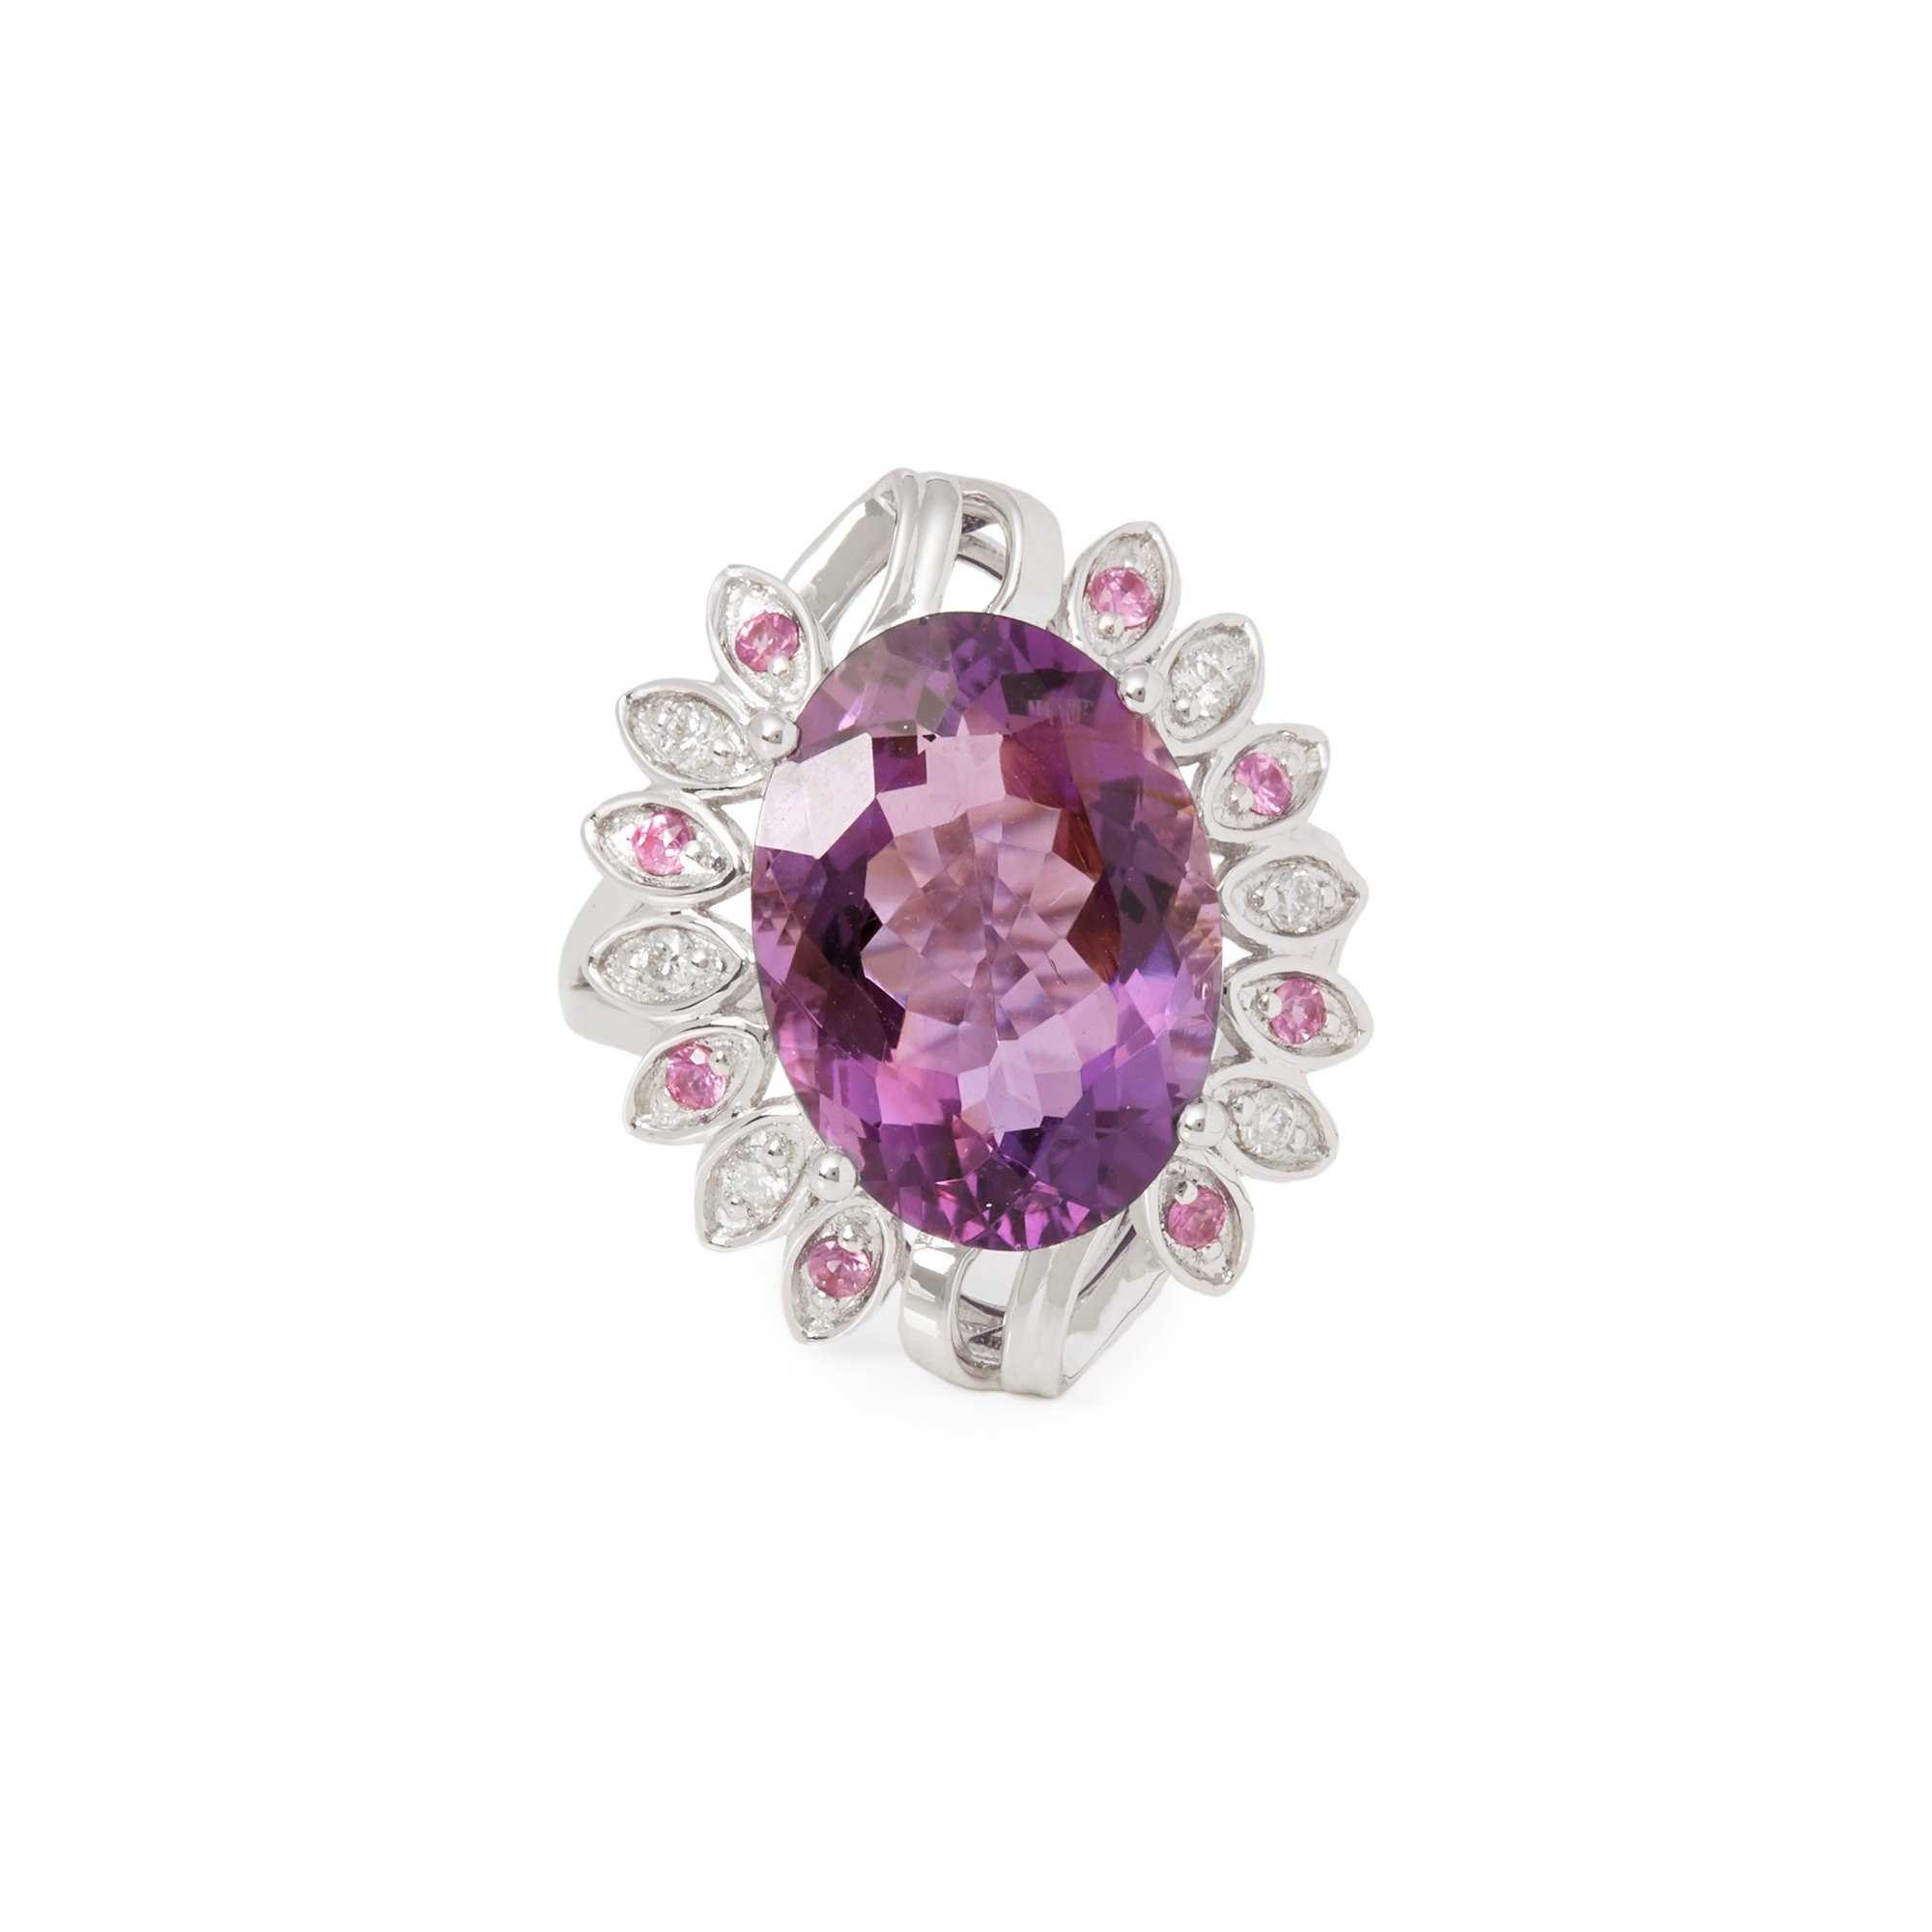 David Jerome Certified 7.07ct Untreated Russian Oval Cut Amethyst and Diamond 18ct gold Ring